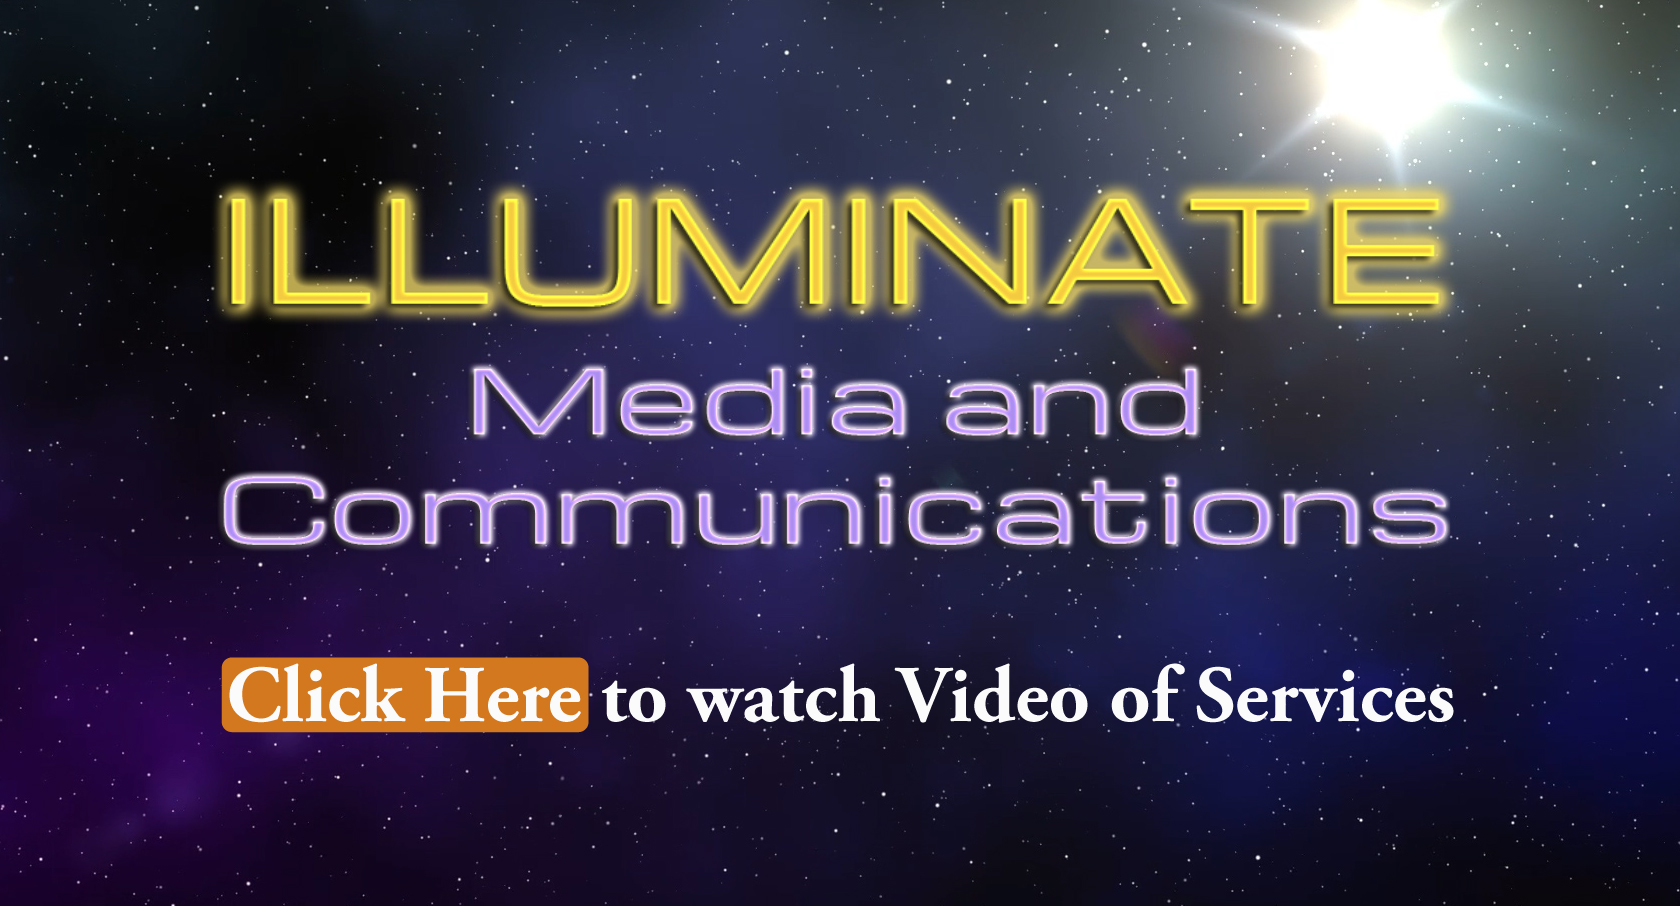 Illuminate Media and Communications Marketing Services